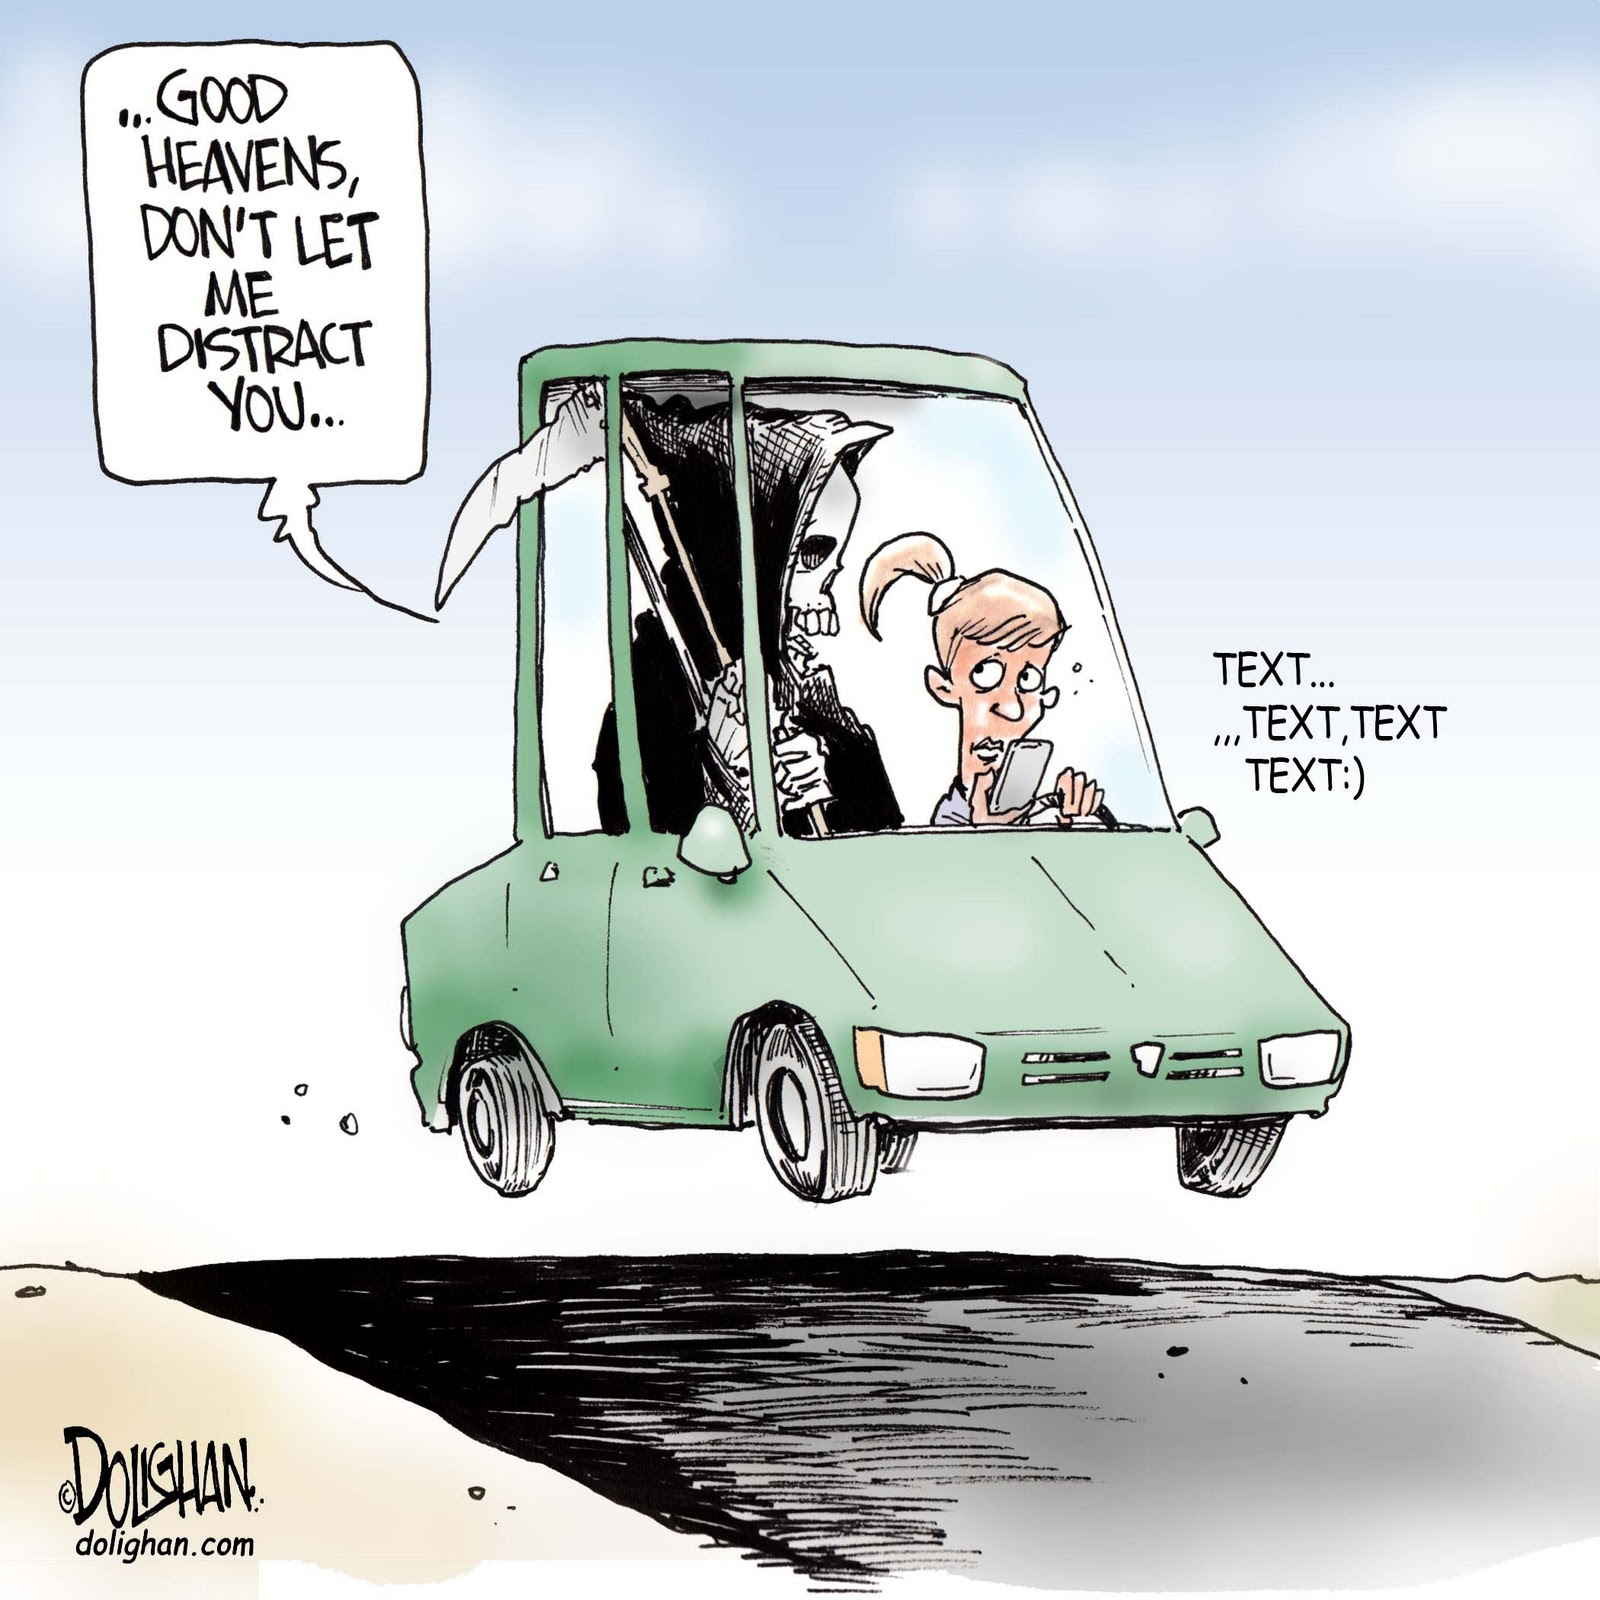 Texting And Driving Quotes Get It Through Images And Words A Deadly Consequence  Texting